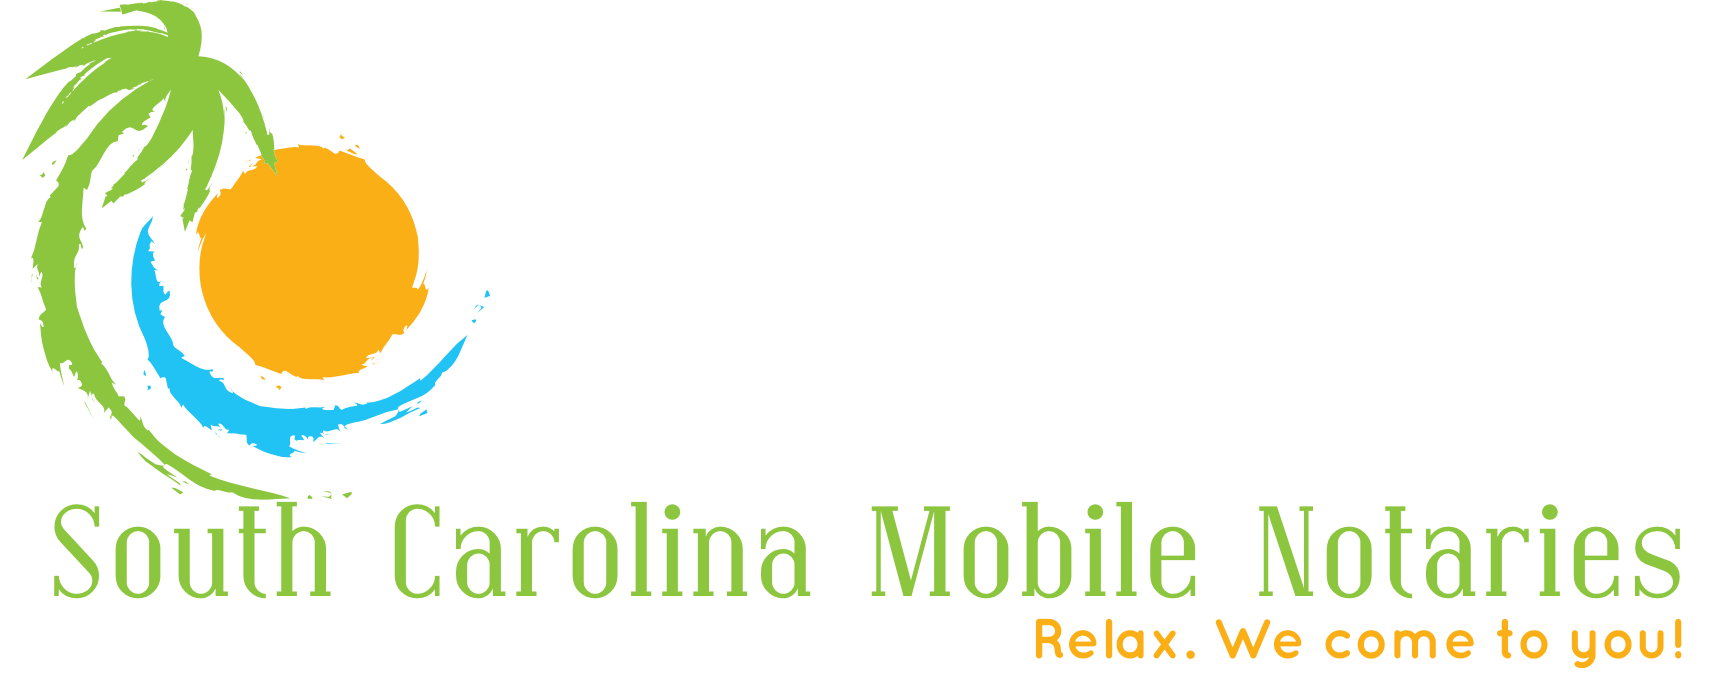 South Carolna Mobile Notaries; mobile notary service south carolina; south carolina traveling notary public; south carolina wedding officiants; south carolina signing agents;